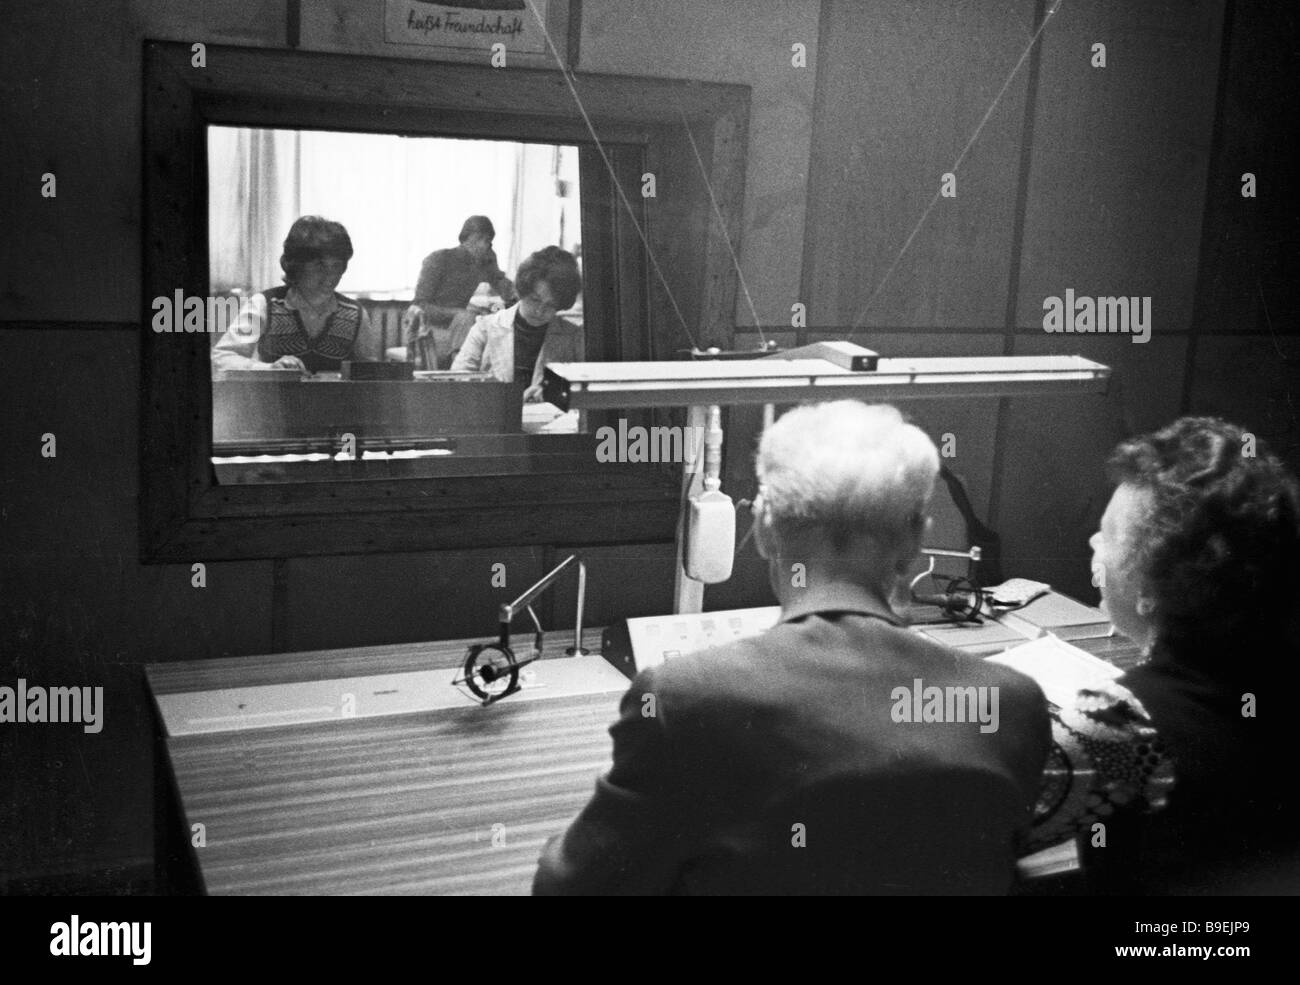 Broadcasting radio programs for the GDR audience - Stock Image